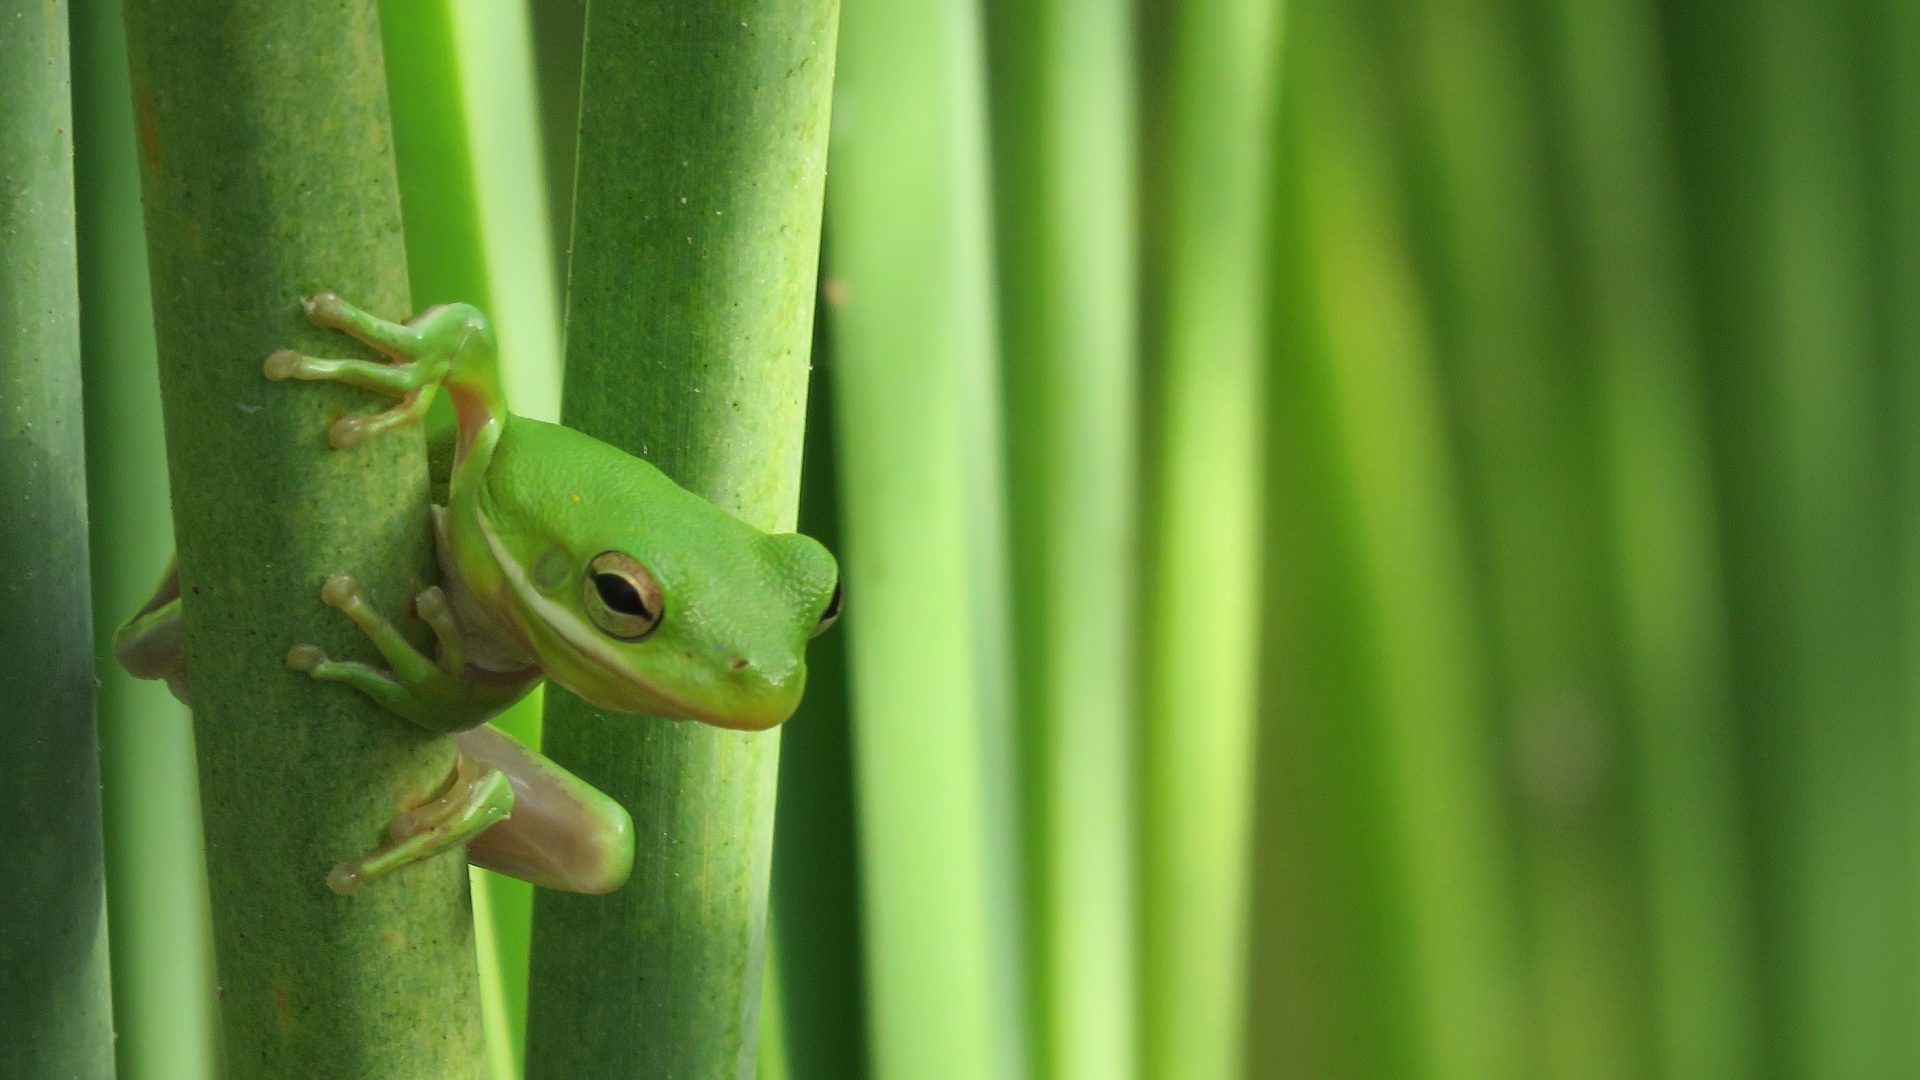 Close-up shot of a green frog on a green stem at Arkansas National Wildlife Refuge